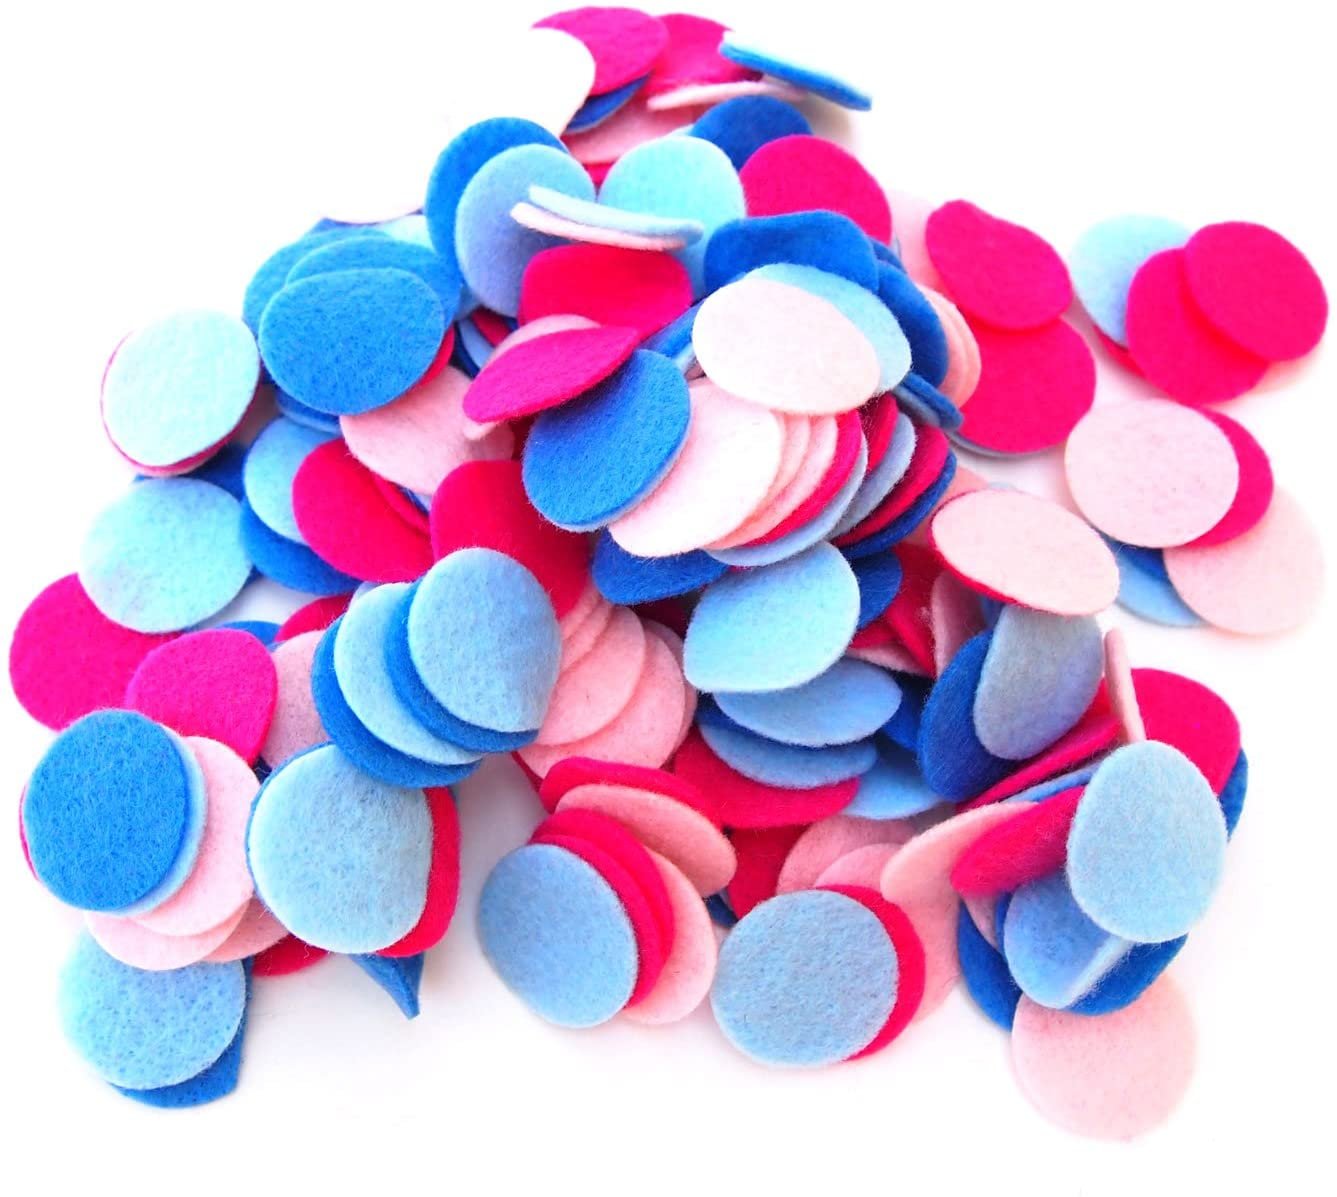 Playfully Ever After Pink, Light Pink, Militia Blue & Light Blue Craft Felt Circles (3/4 Inch - 300pc)